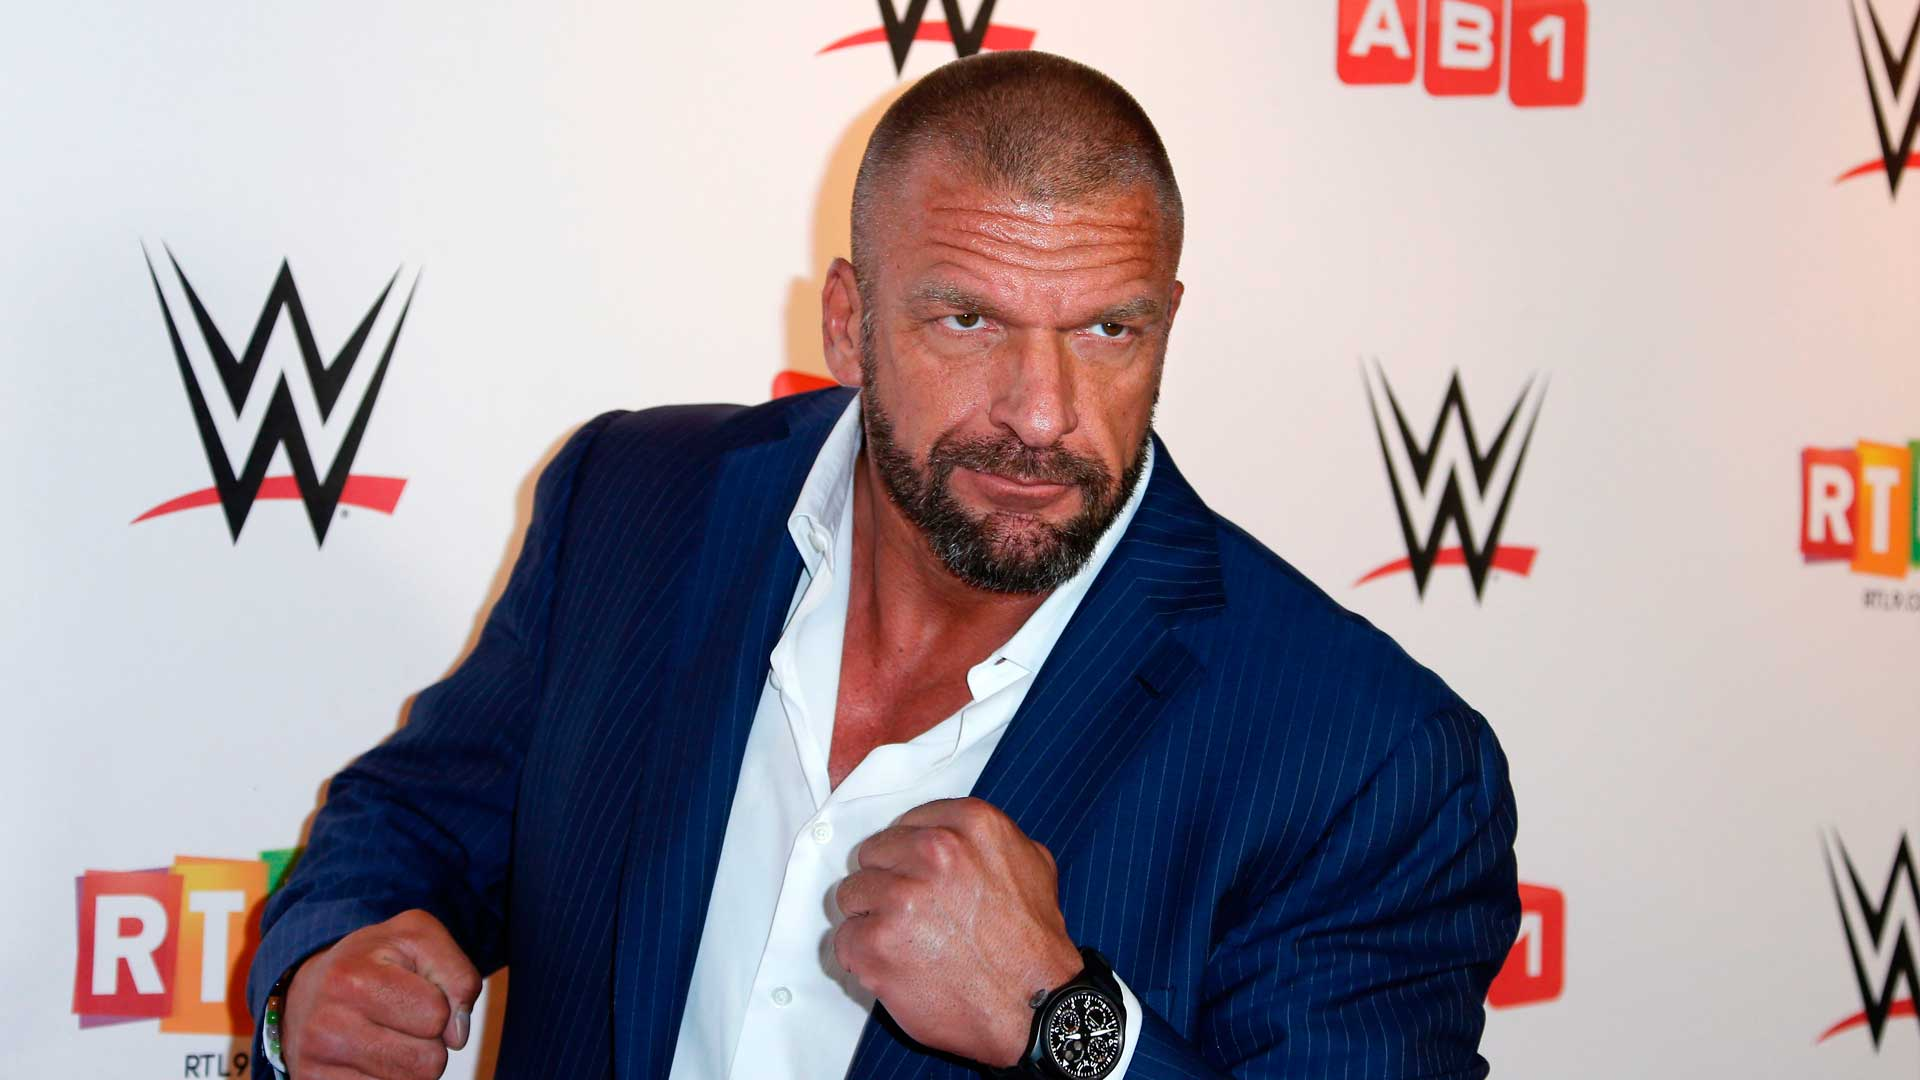 WWE great Triple H announces partnership between NXT UK and Enfield Town